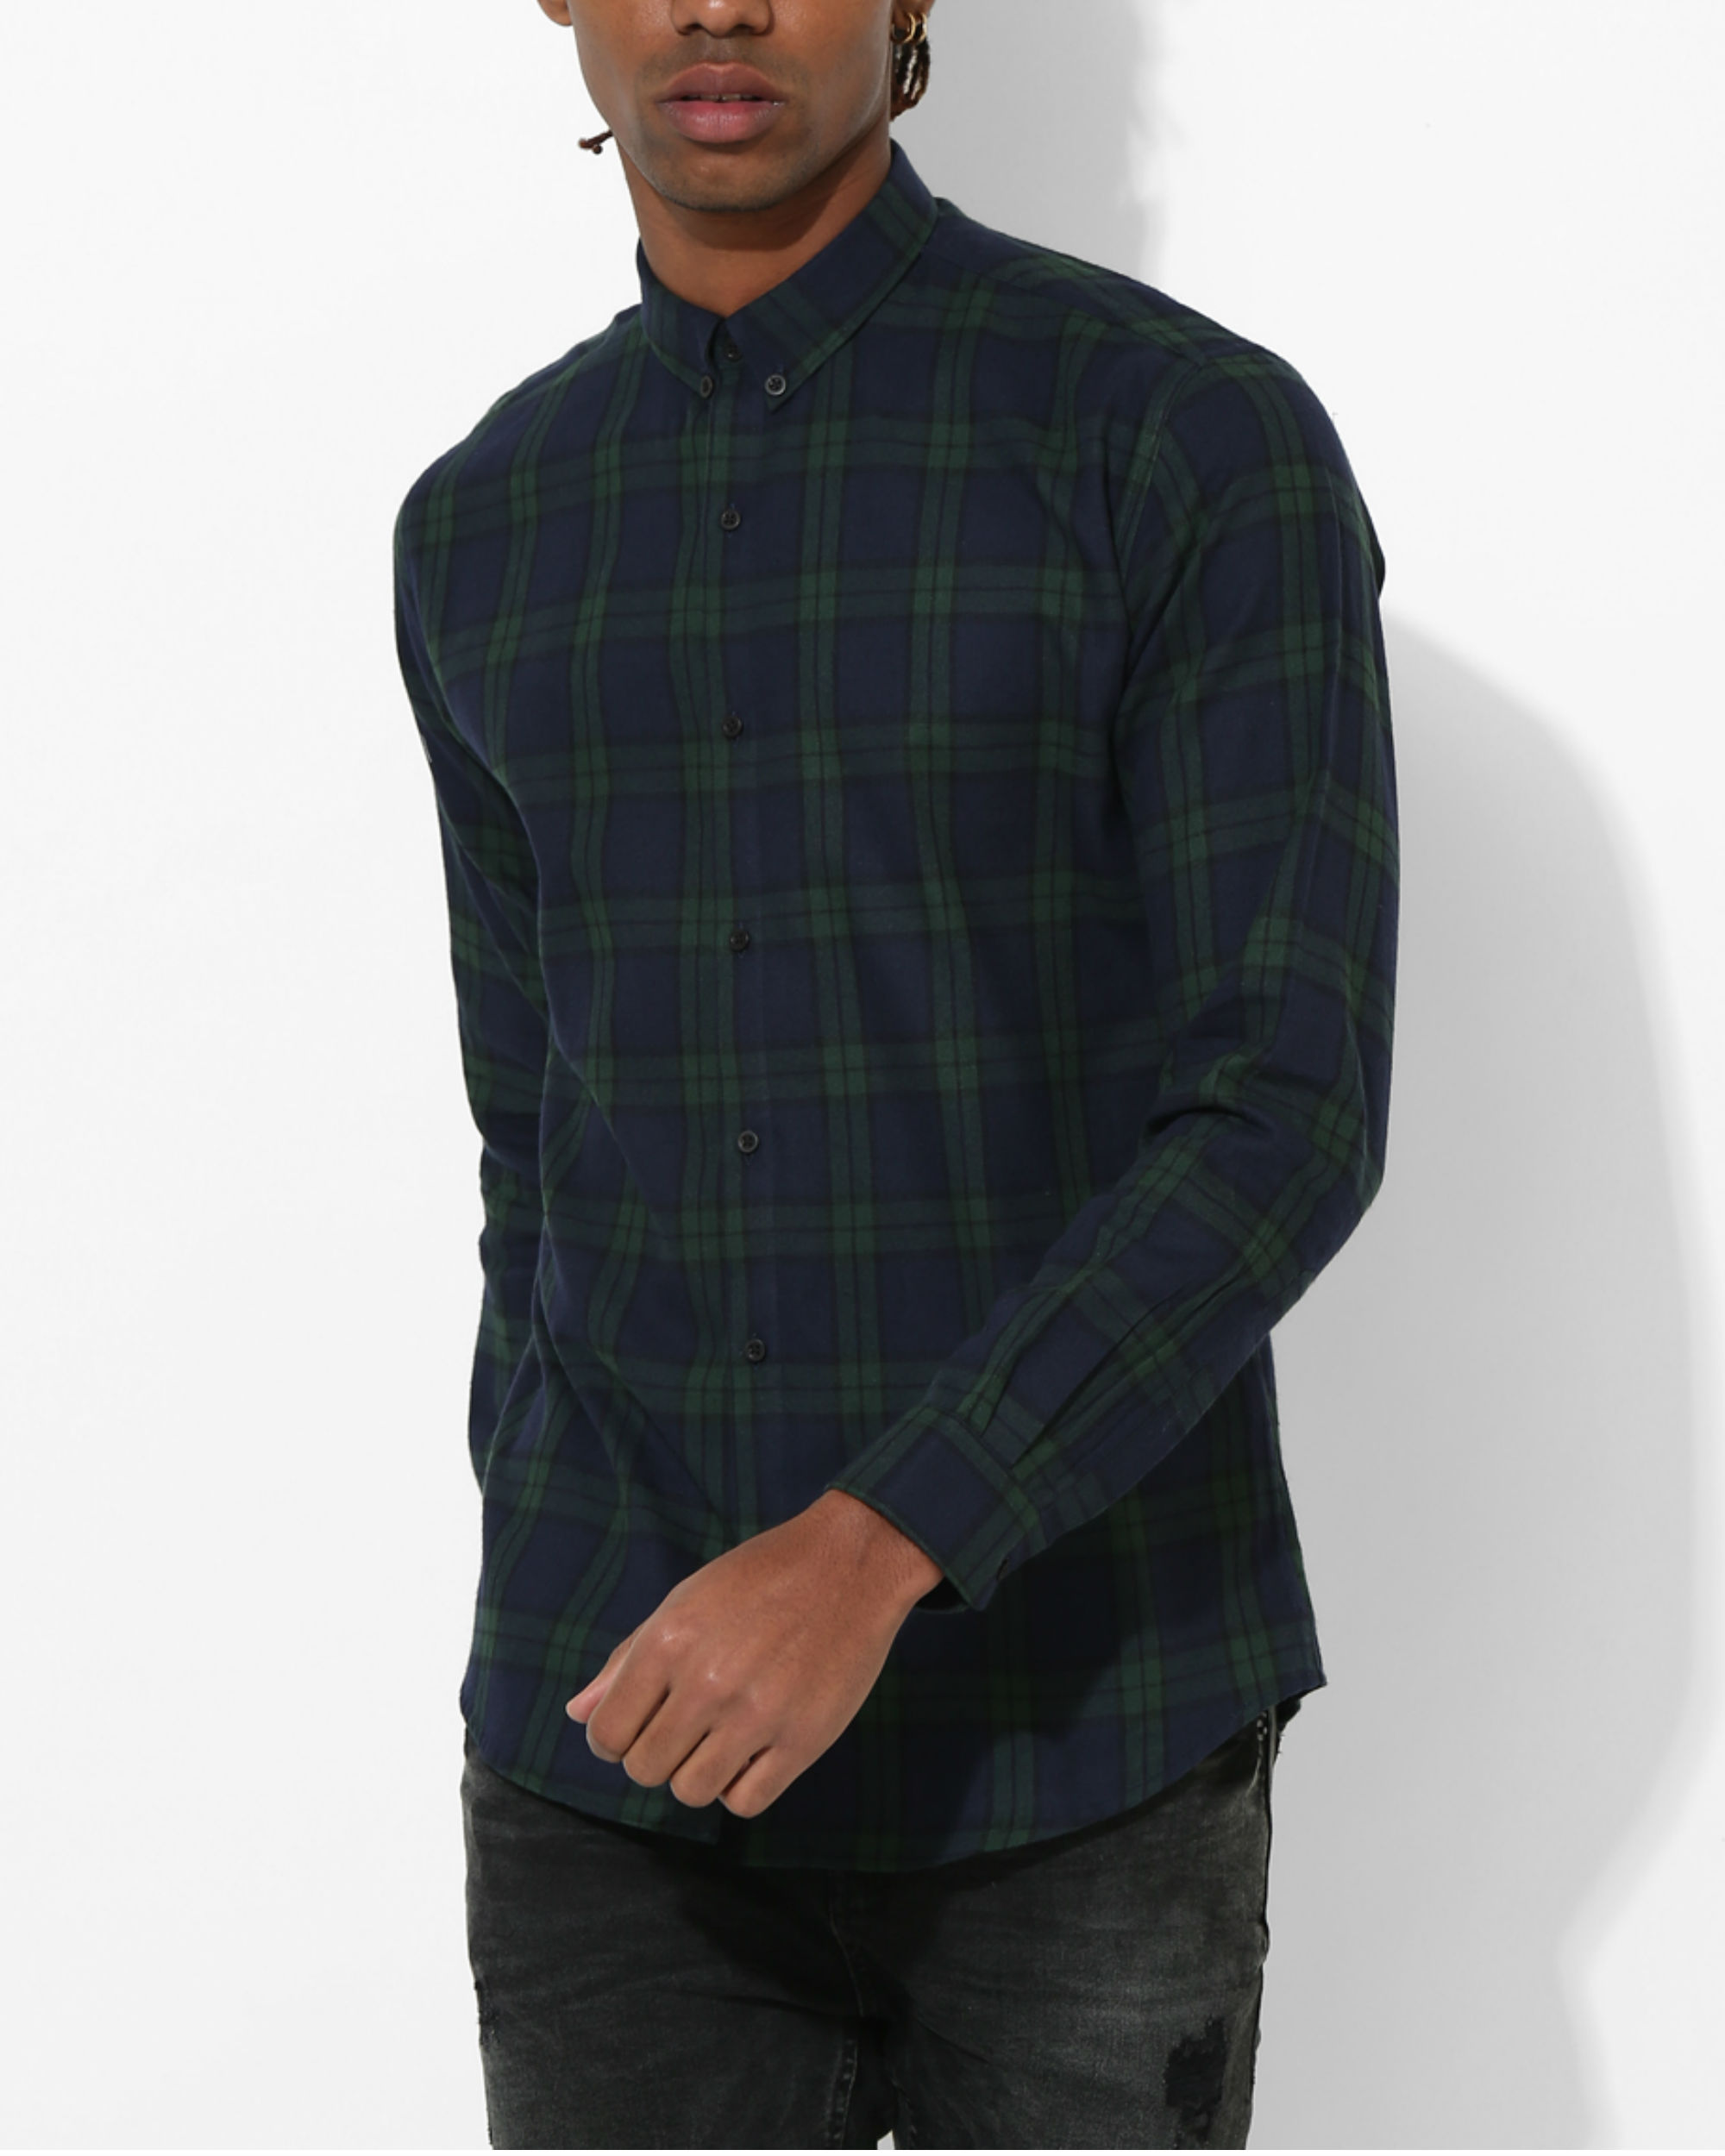 Oxford Checks Green & Black Shirt